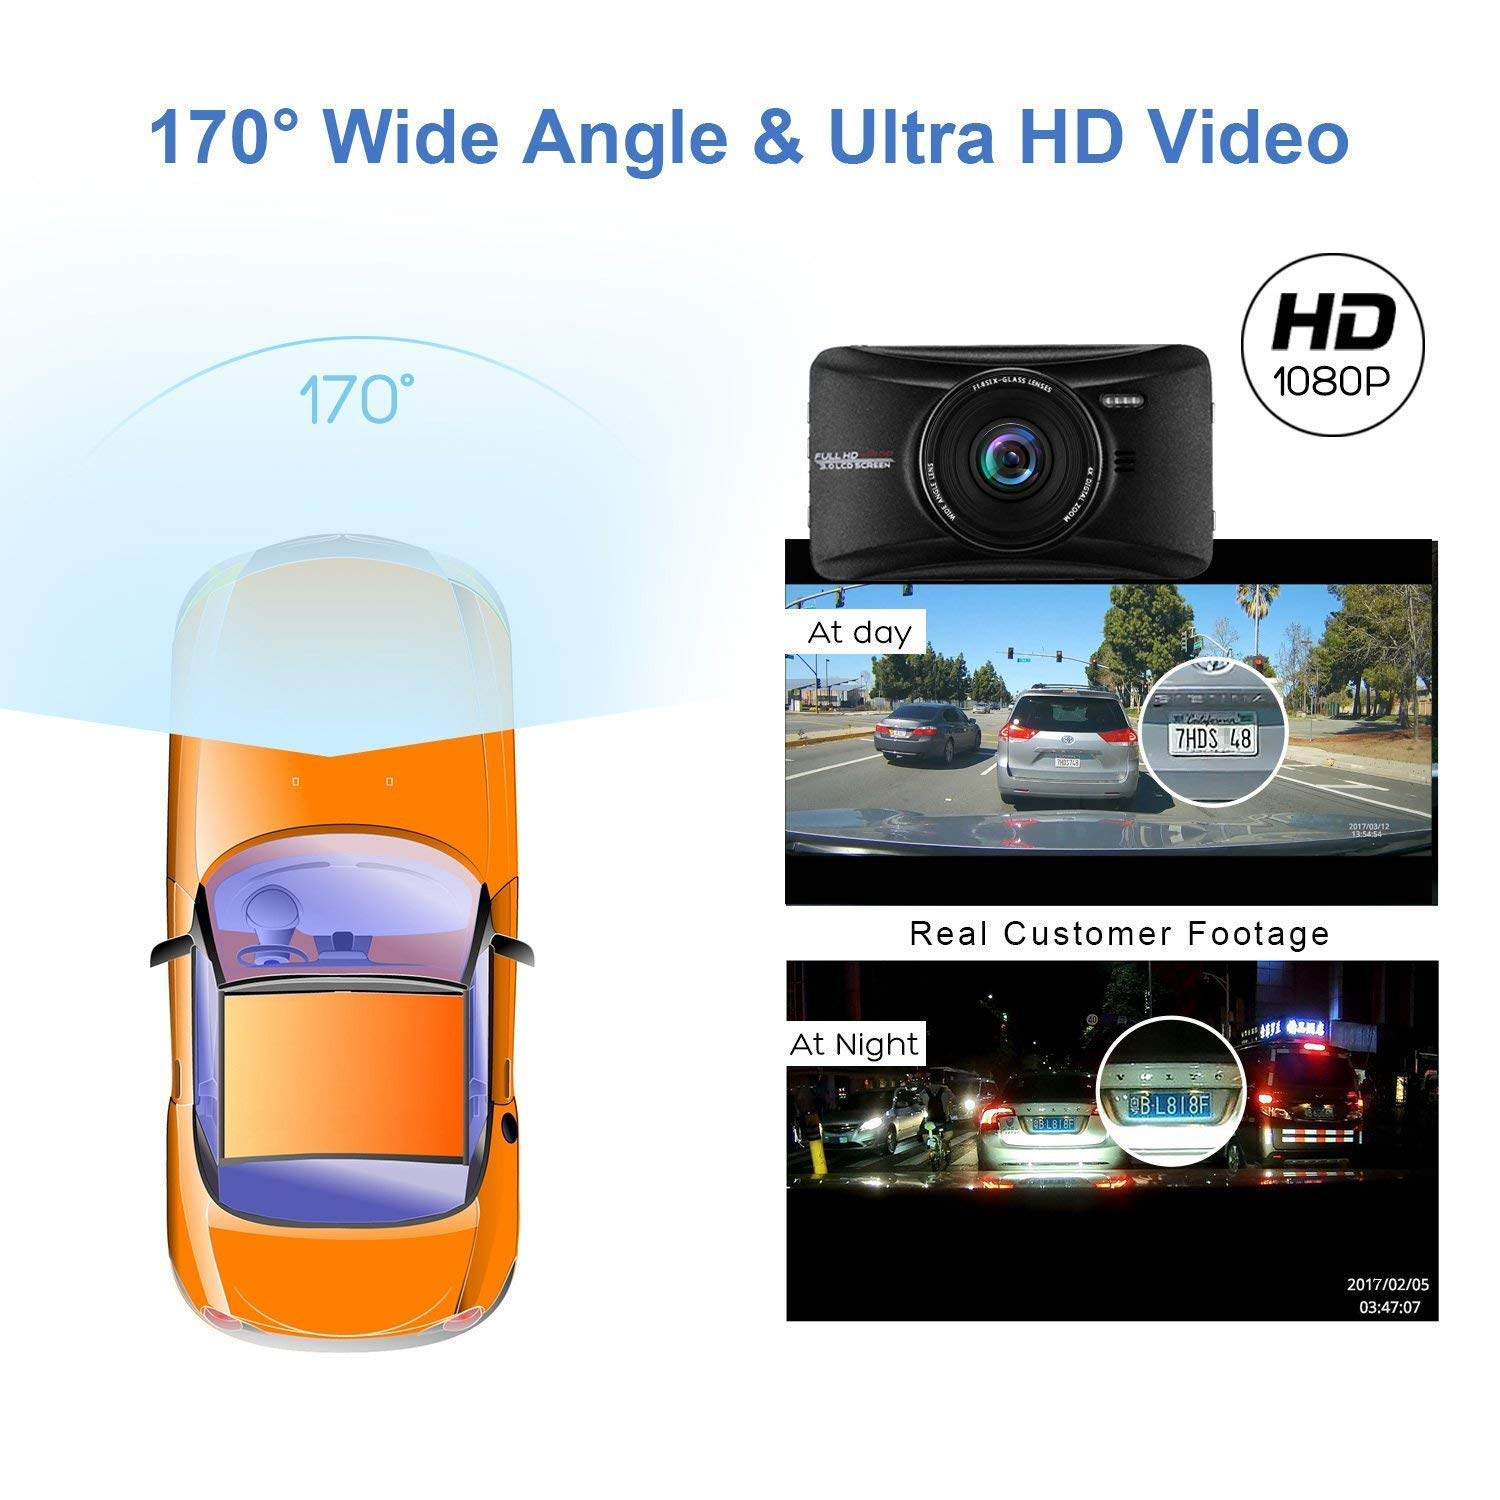 Parking Guard WDR 3 1080P HD Car Recorder 170 Wide Angle Night Vison Dashboard Camera with G-Sensor Loop Recording OldShark Dash Cam with 32GB Card